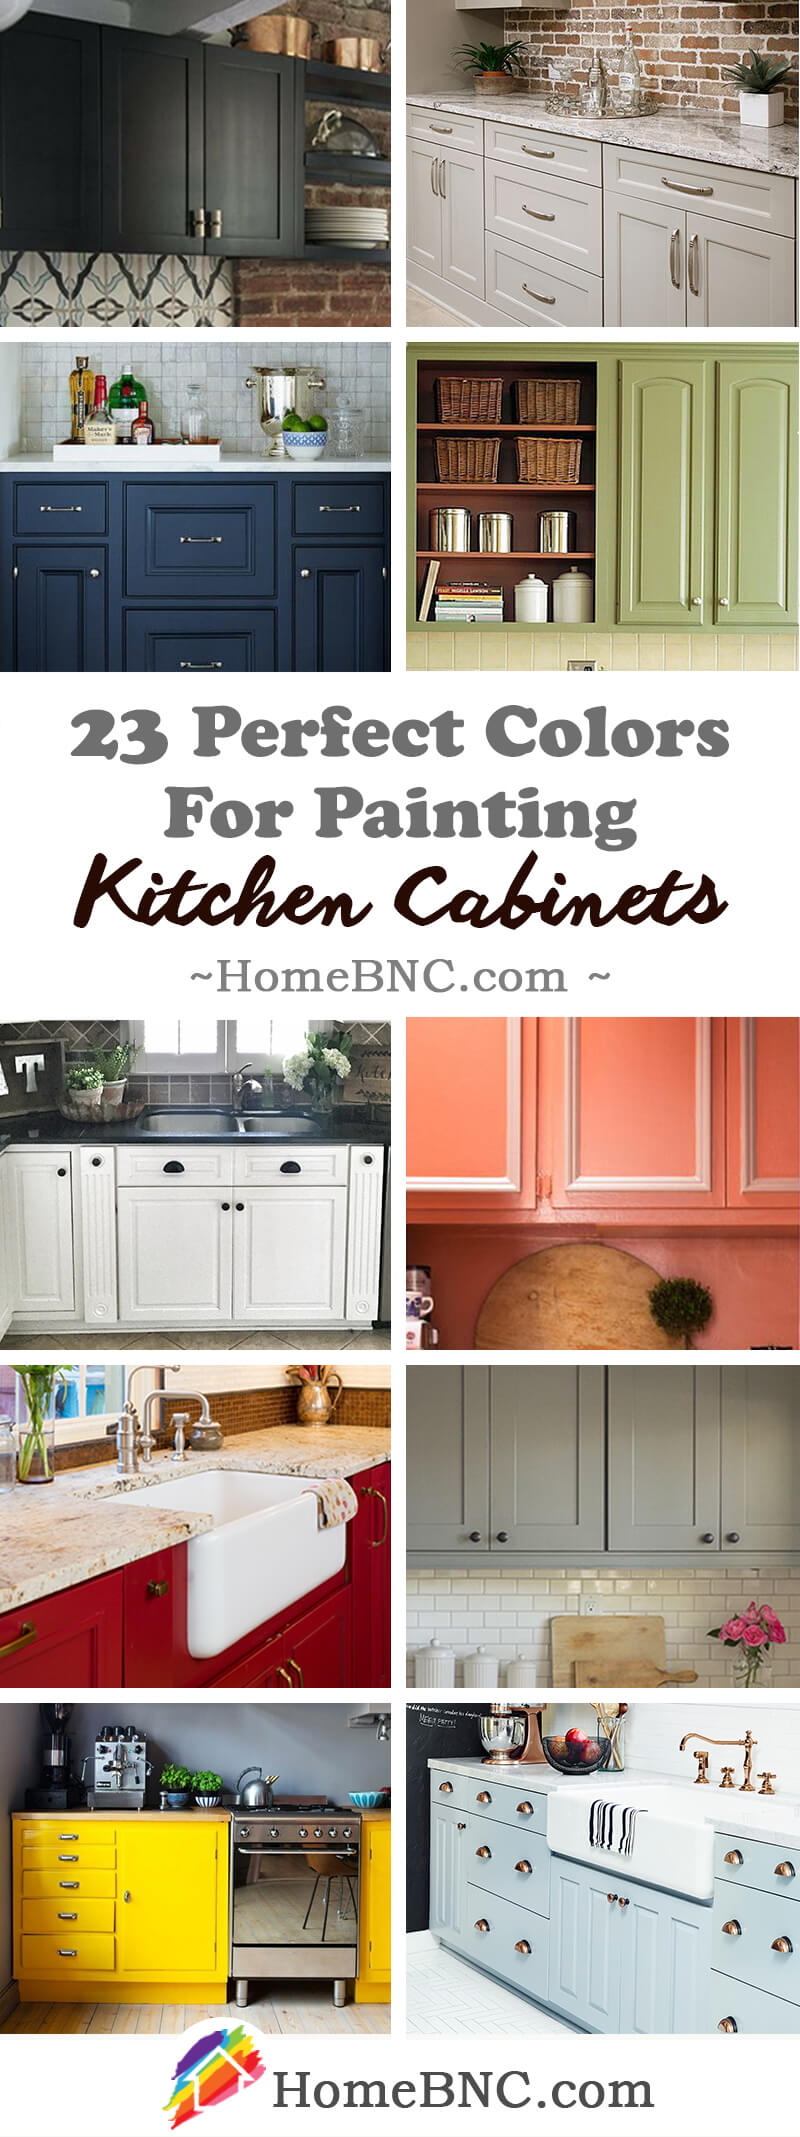 Kitchen Cabinet Paint Colors Perfect Colors Painting Kitchen Cabinets Decor Ideas